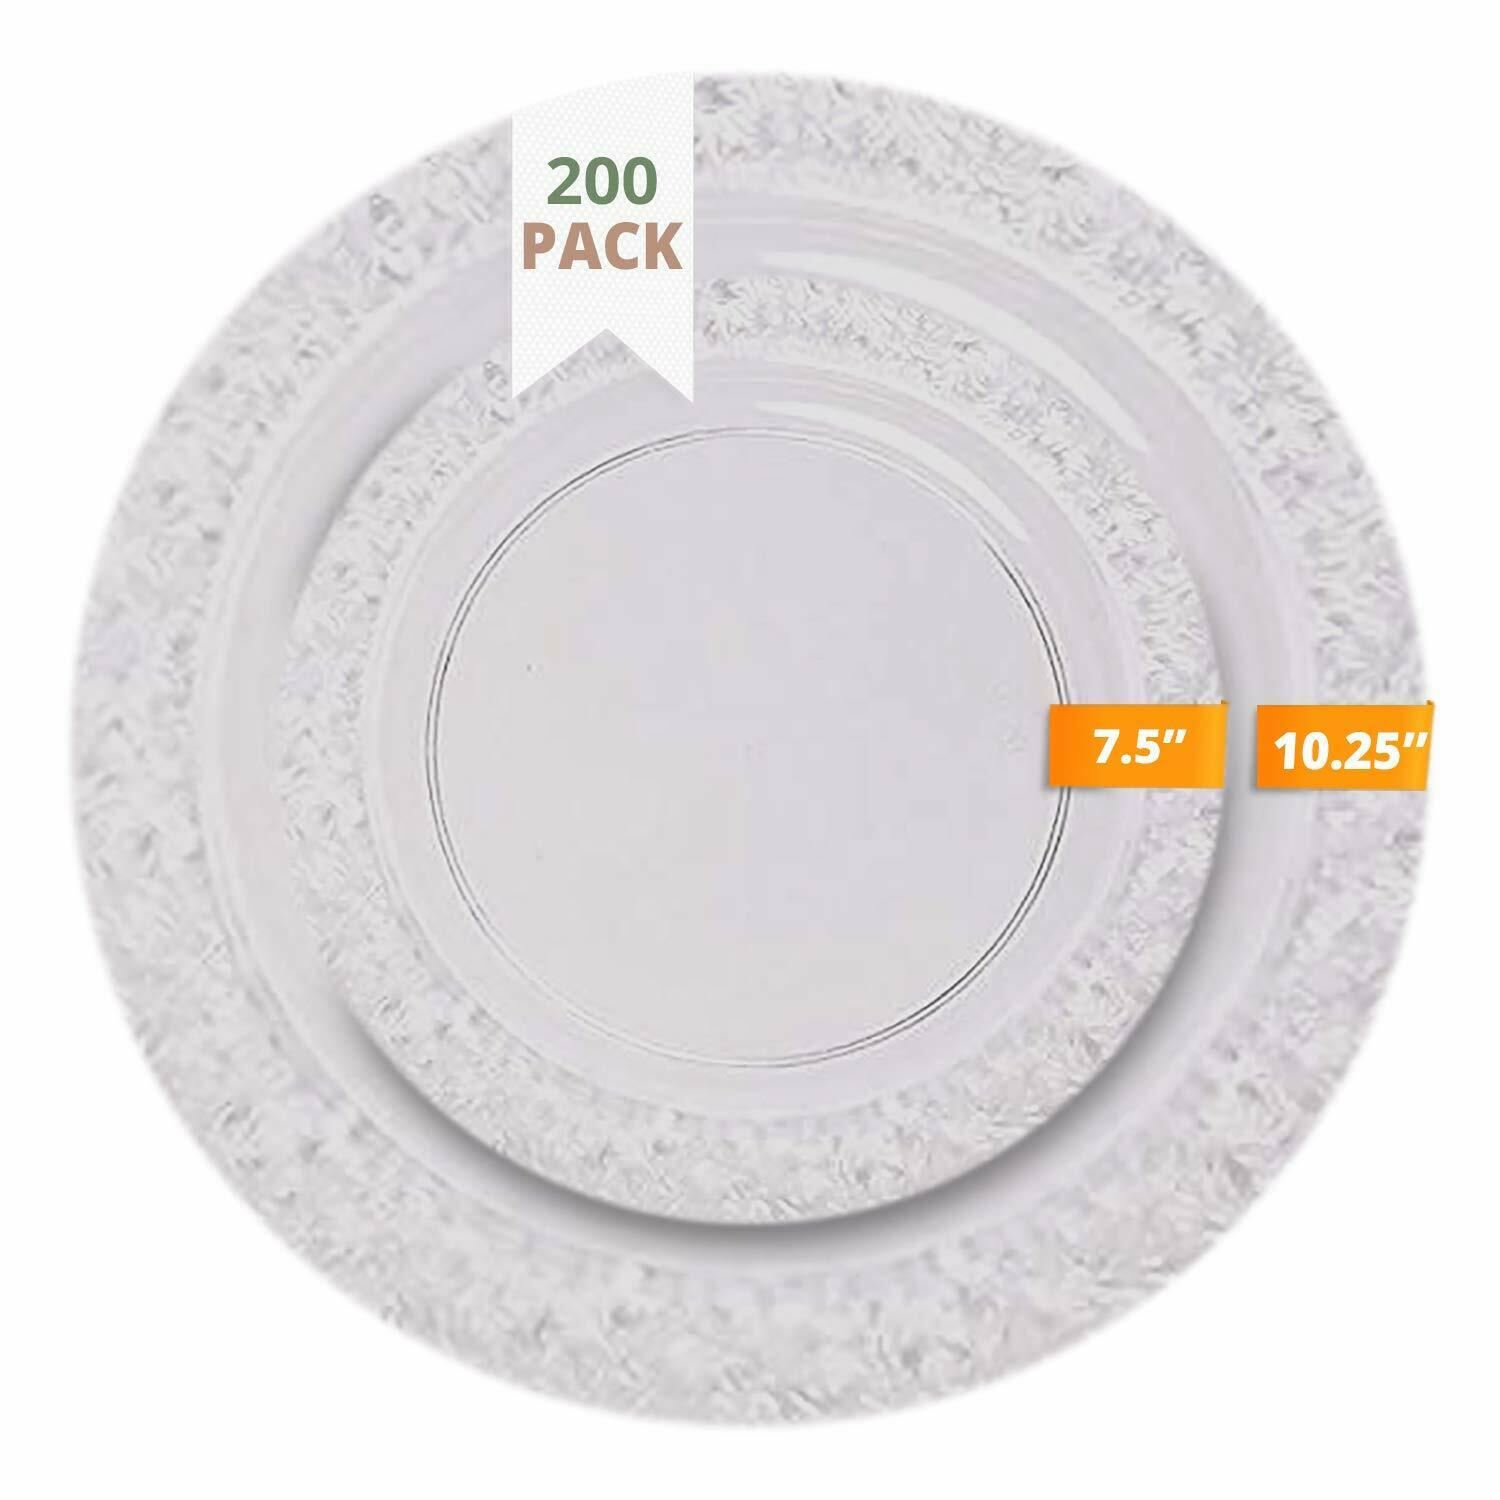 Ttg 200 Piece Plastic Dinnerware Set